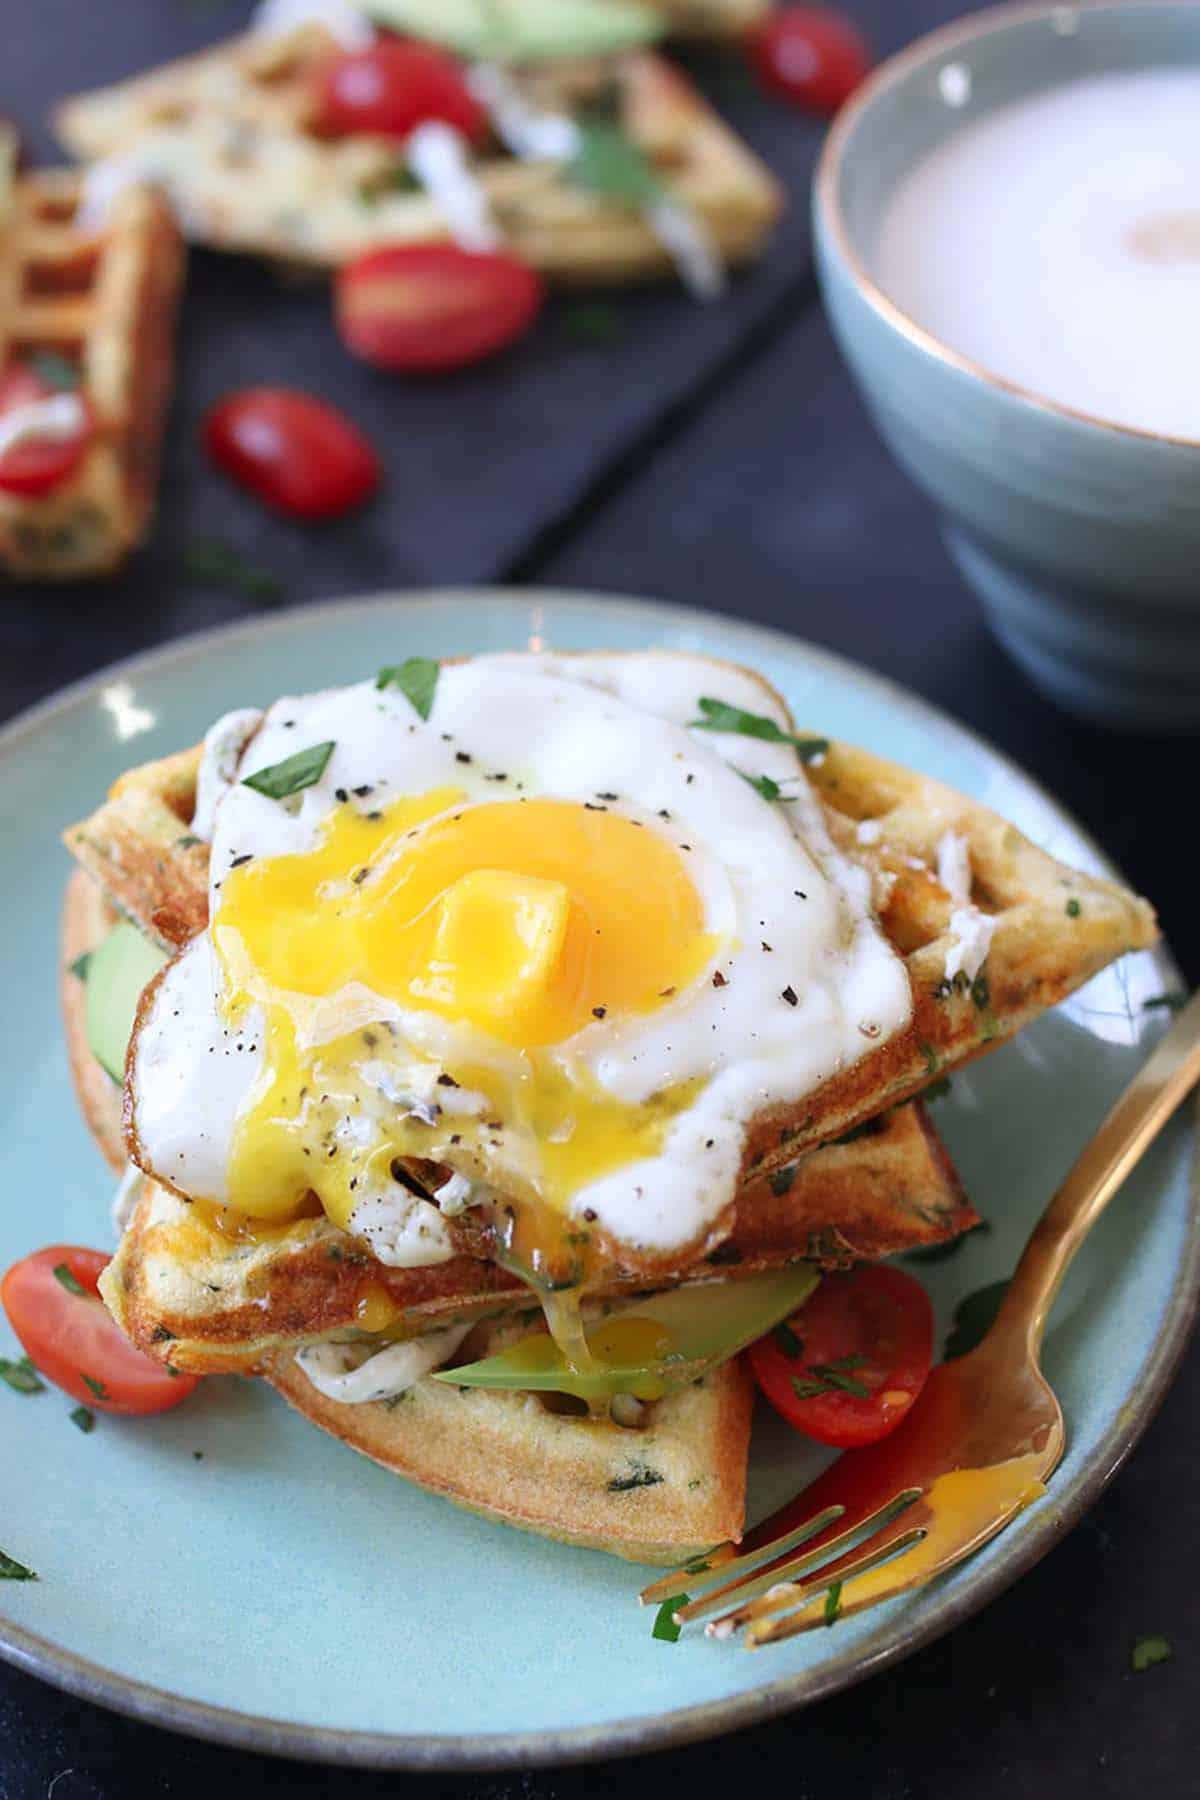 A fried egg on top of three waffles.